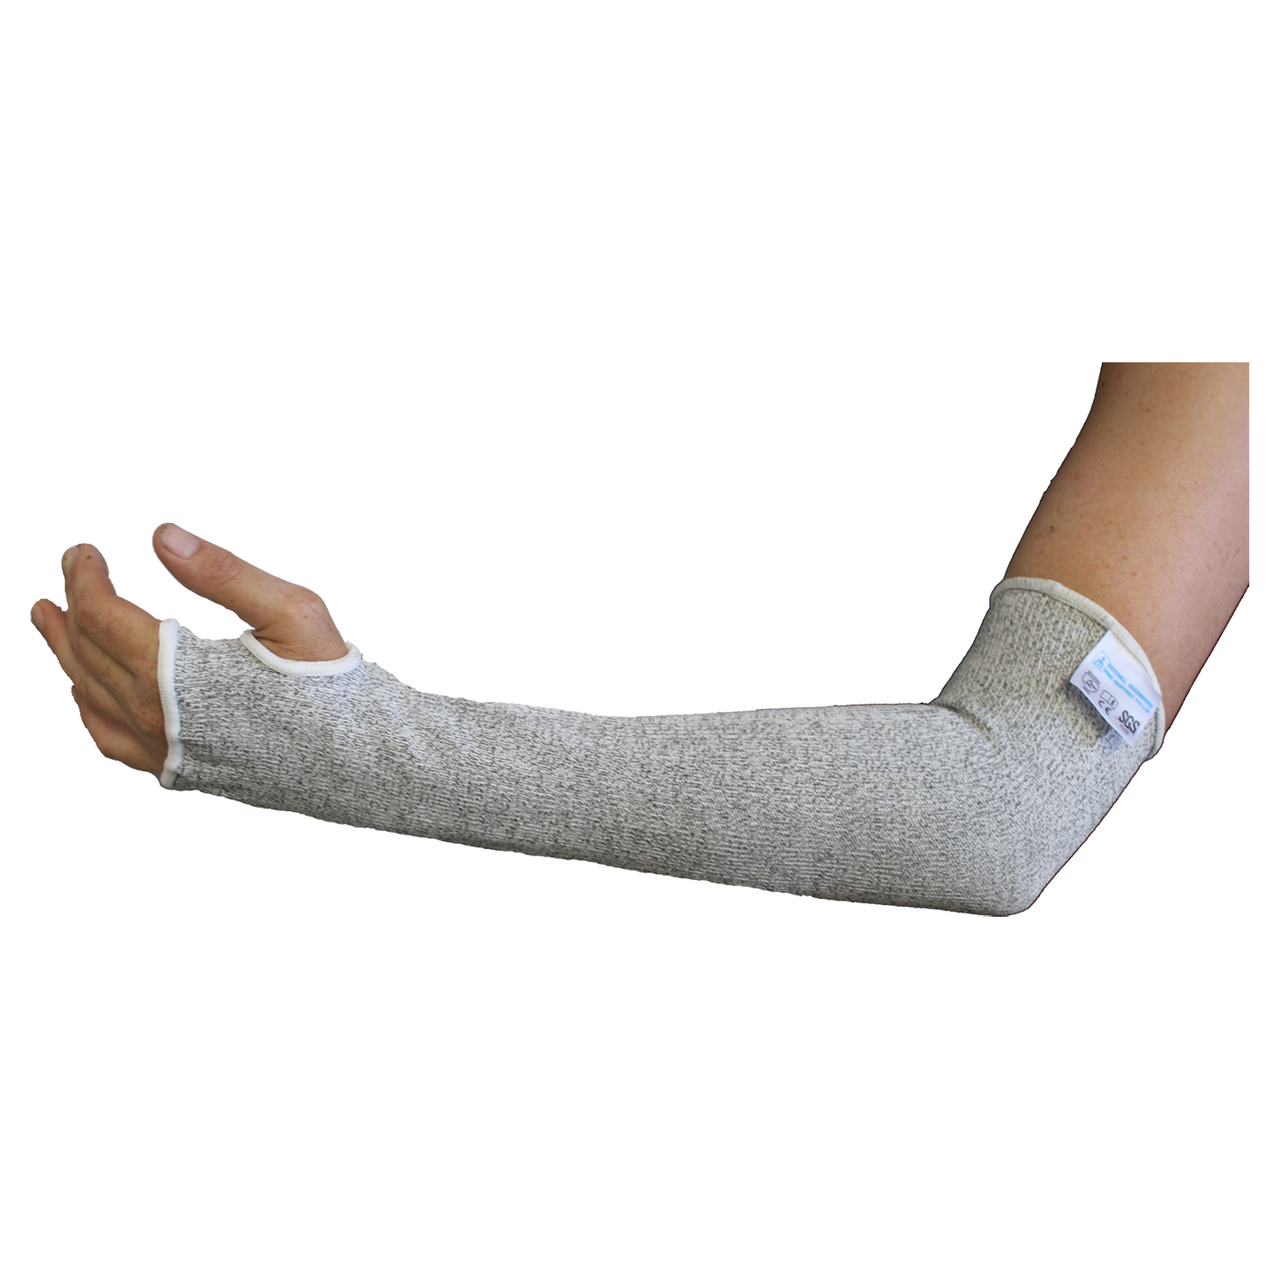 Arm Guard Sleeve Full Arm 45cm With Thumb Hold Food Flex Level 5 Cut Resistant Sleeve Mitchell Engineering Food Equipment